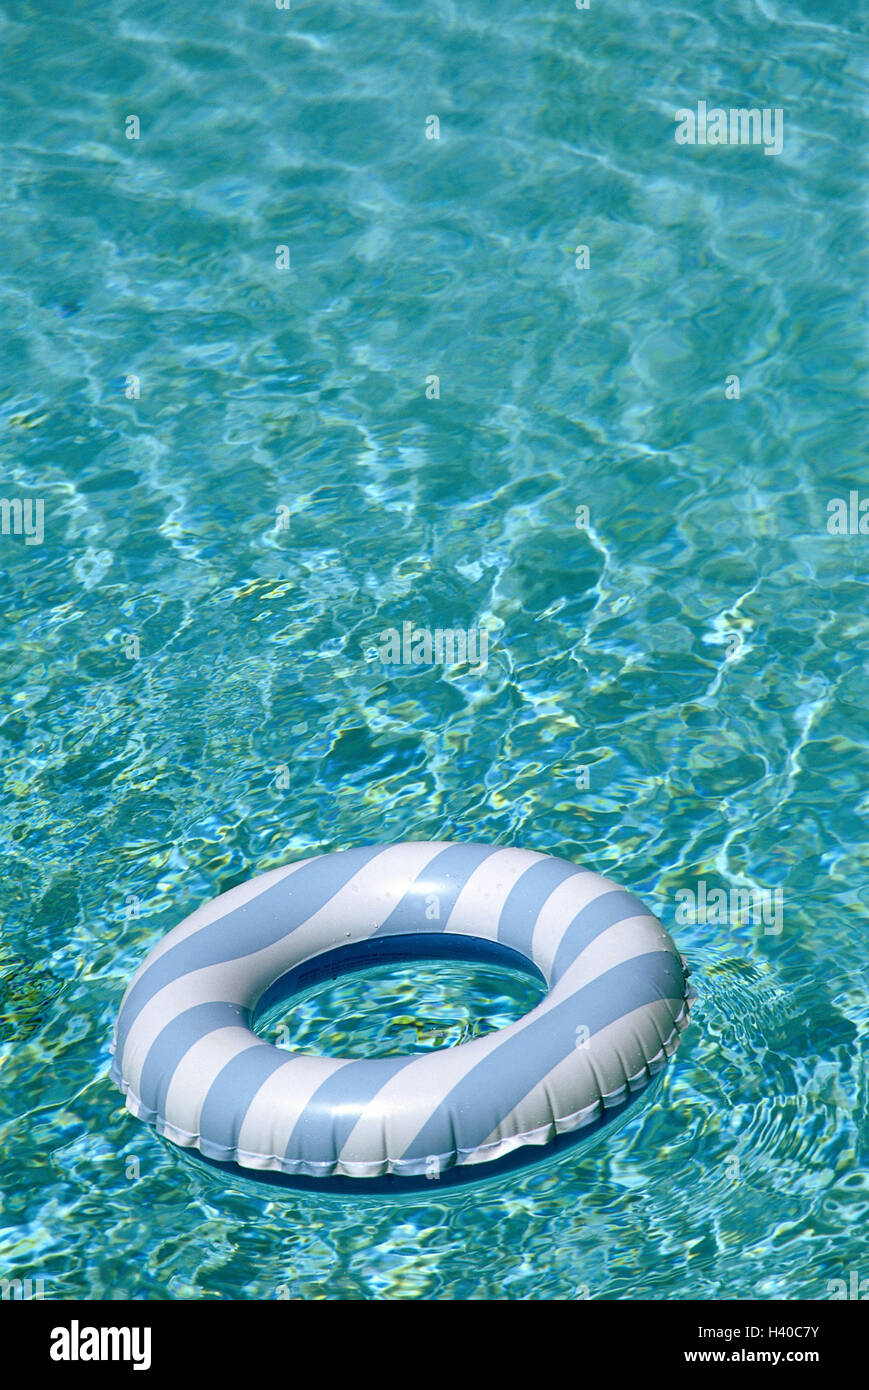 Pool water surface swimming tyre swimming pool water rescue